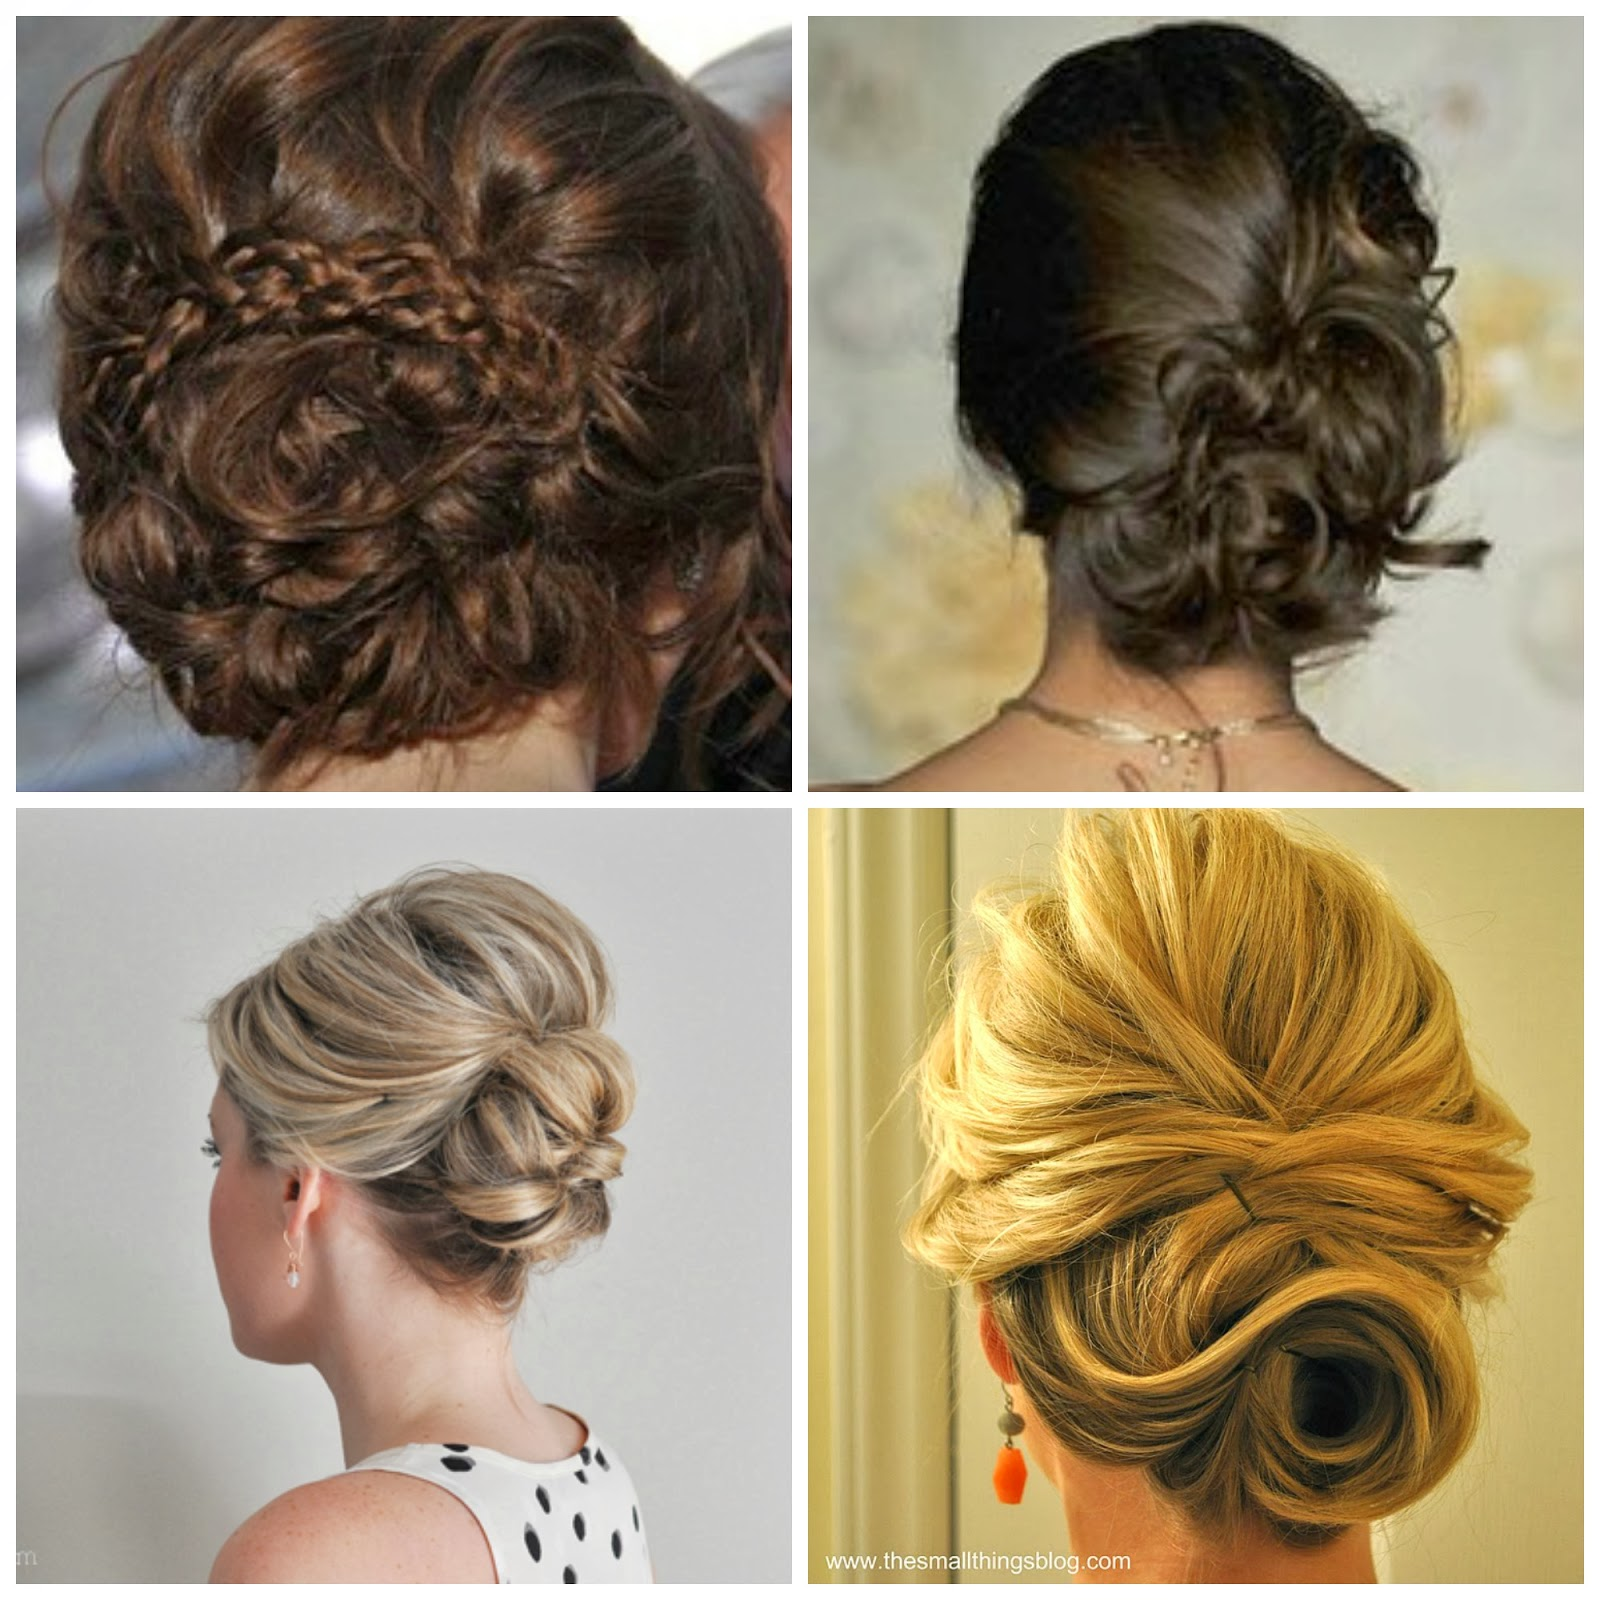 hairstyles for my face shape ~ hair is our crown